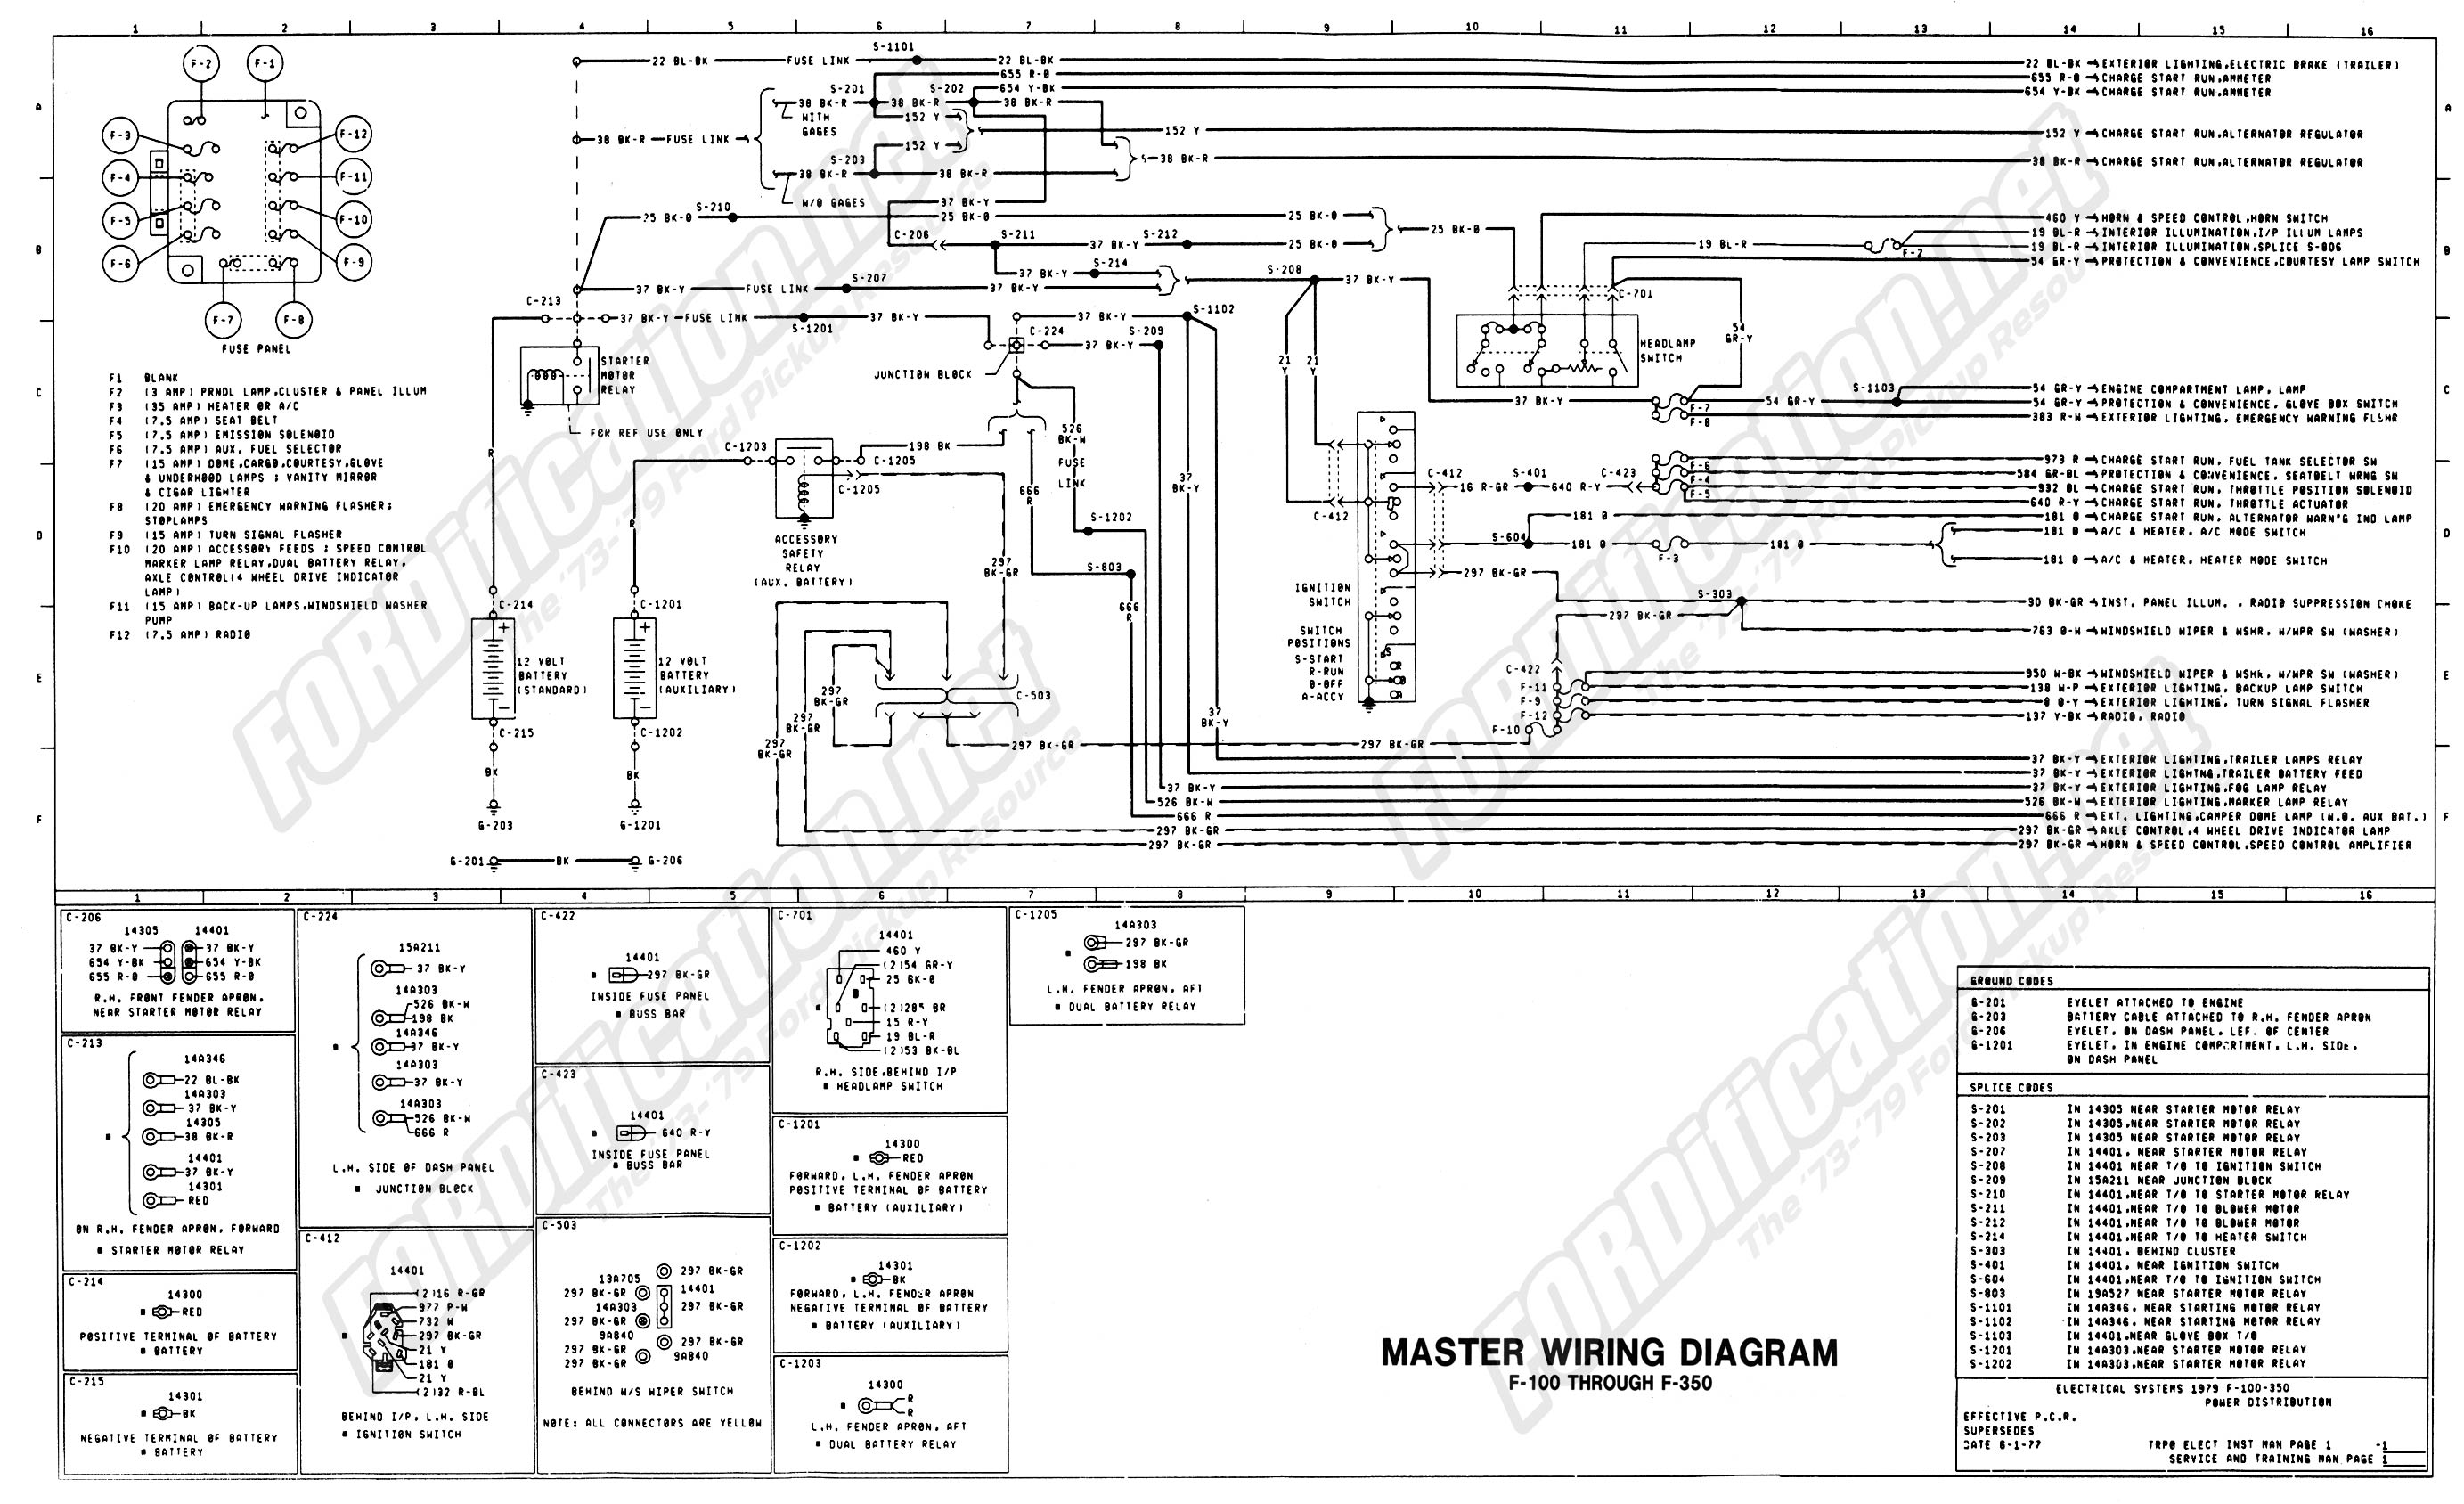 wiring_79master_1of9 1973 1979 ford truck wiring diagrams & schematics fordification net 1977 ford f100 wiring diagram at n-0.co